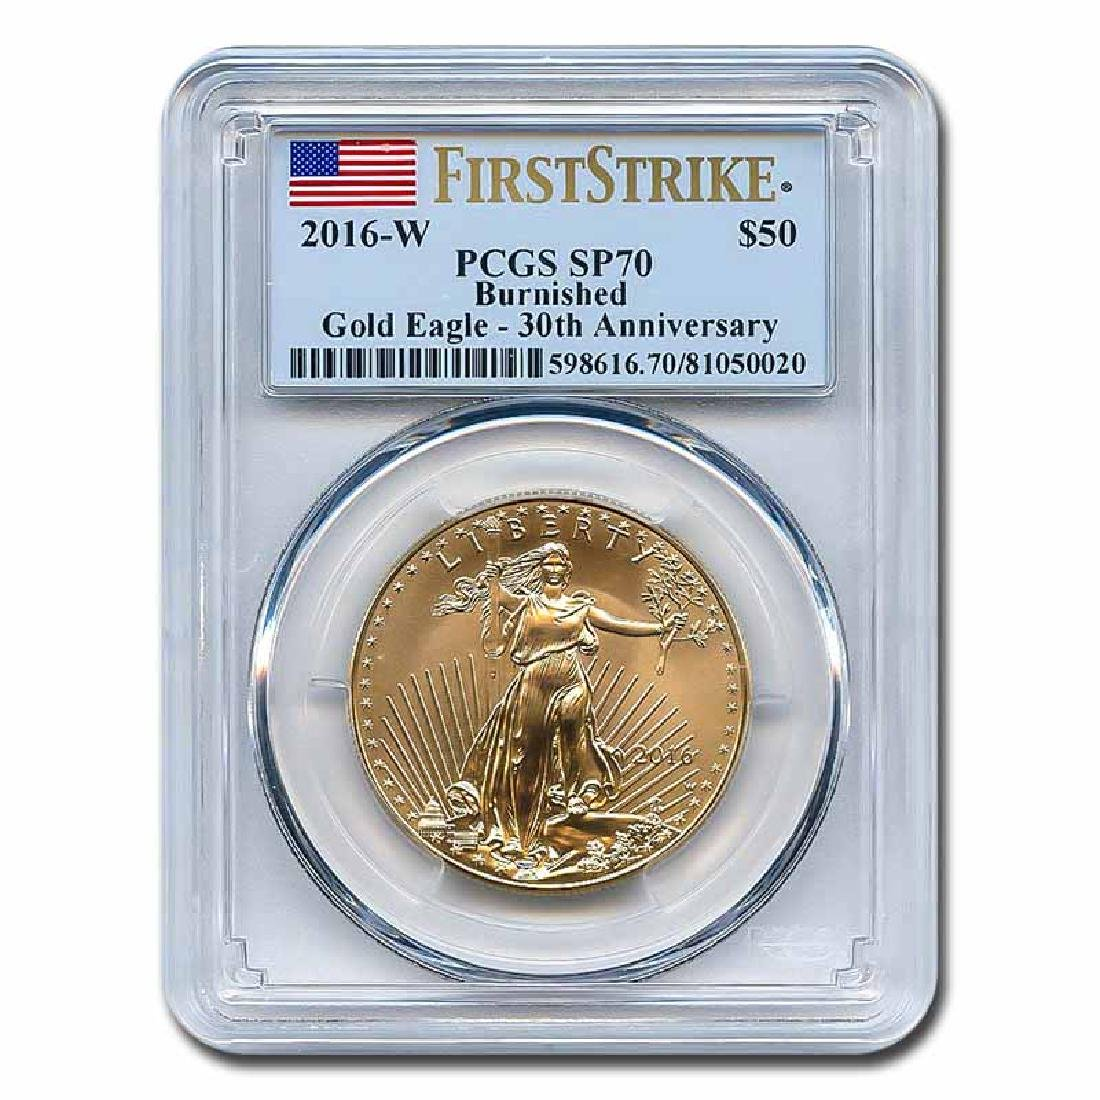 Certified Burnished American $50 Gold Eagle 2016-W SP70